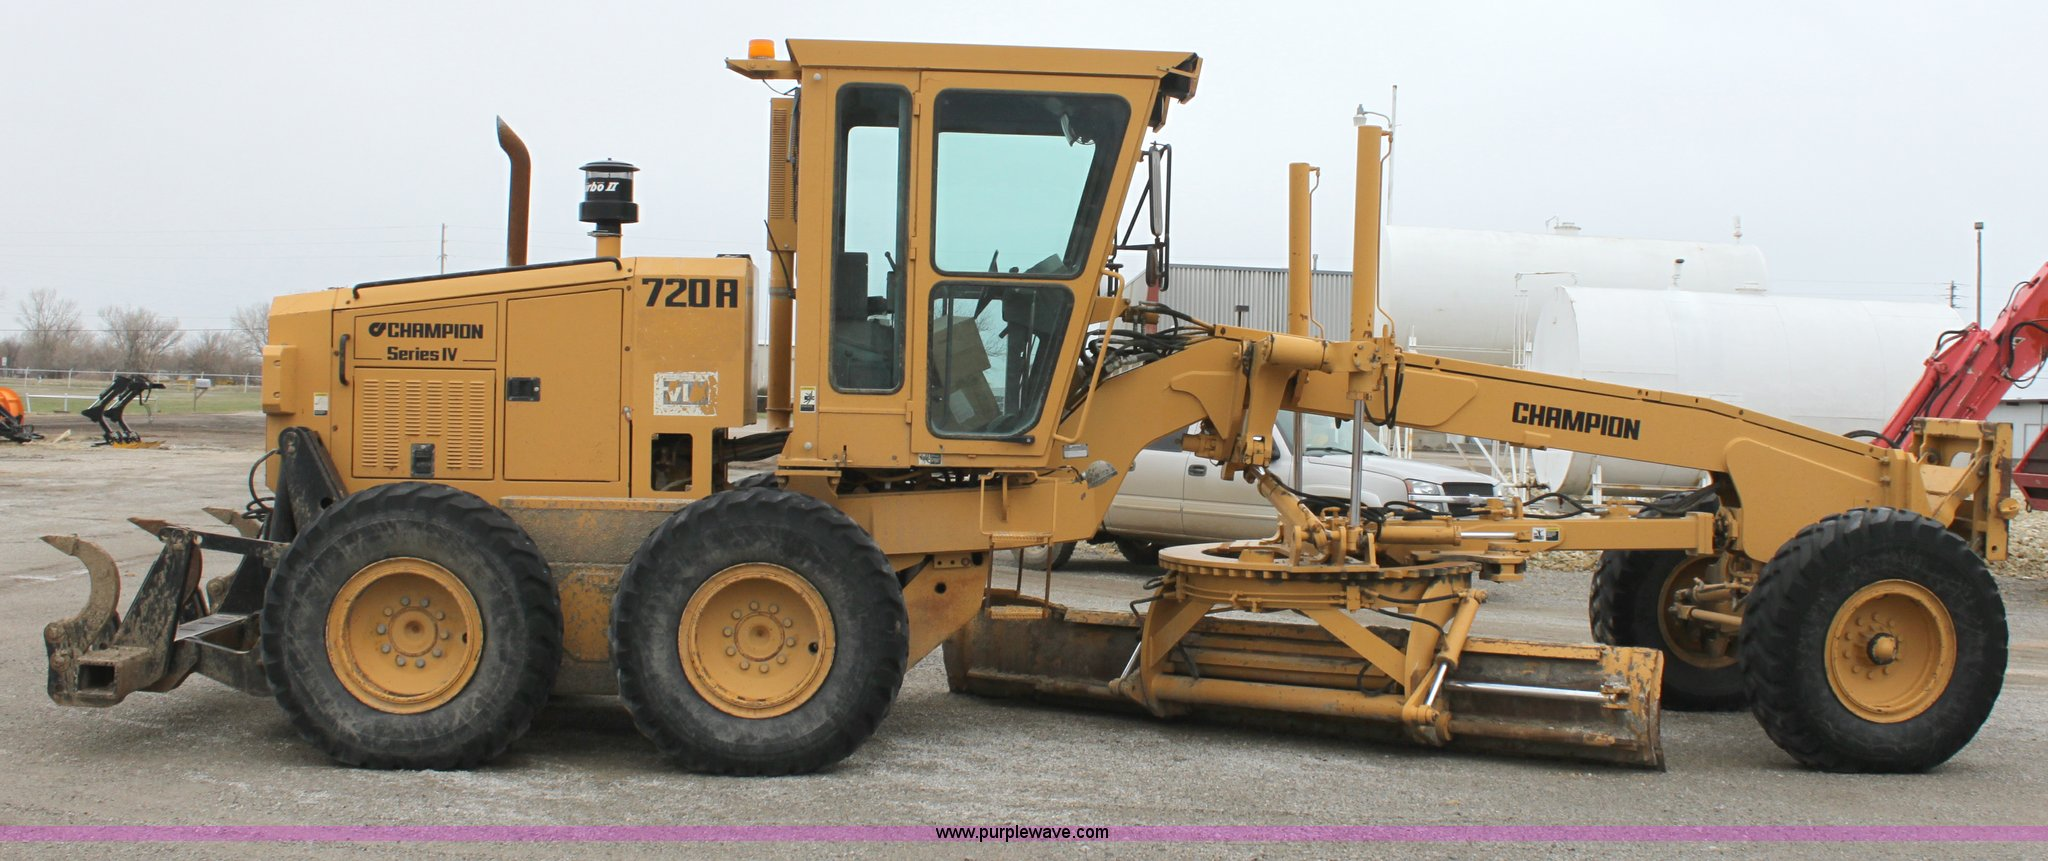 ... Champion 720A Series IV articulated motor grader Full size in new  window ...